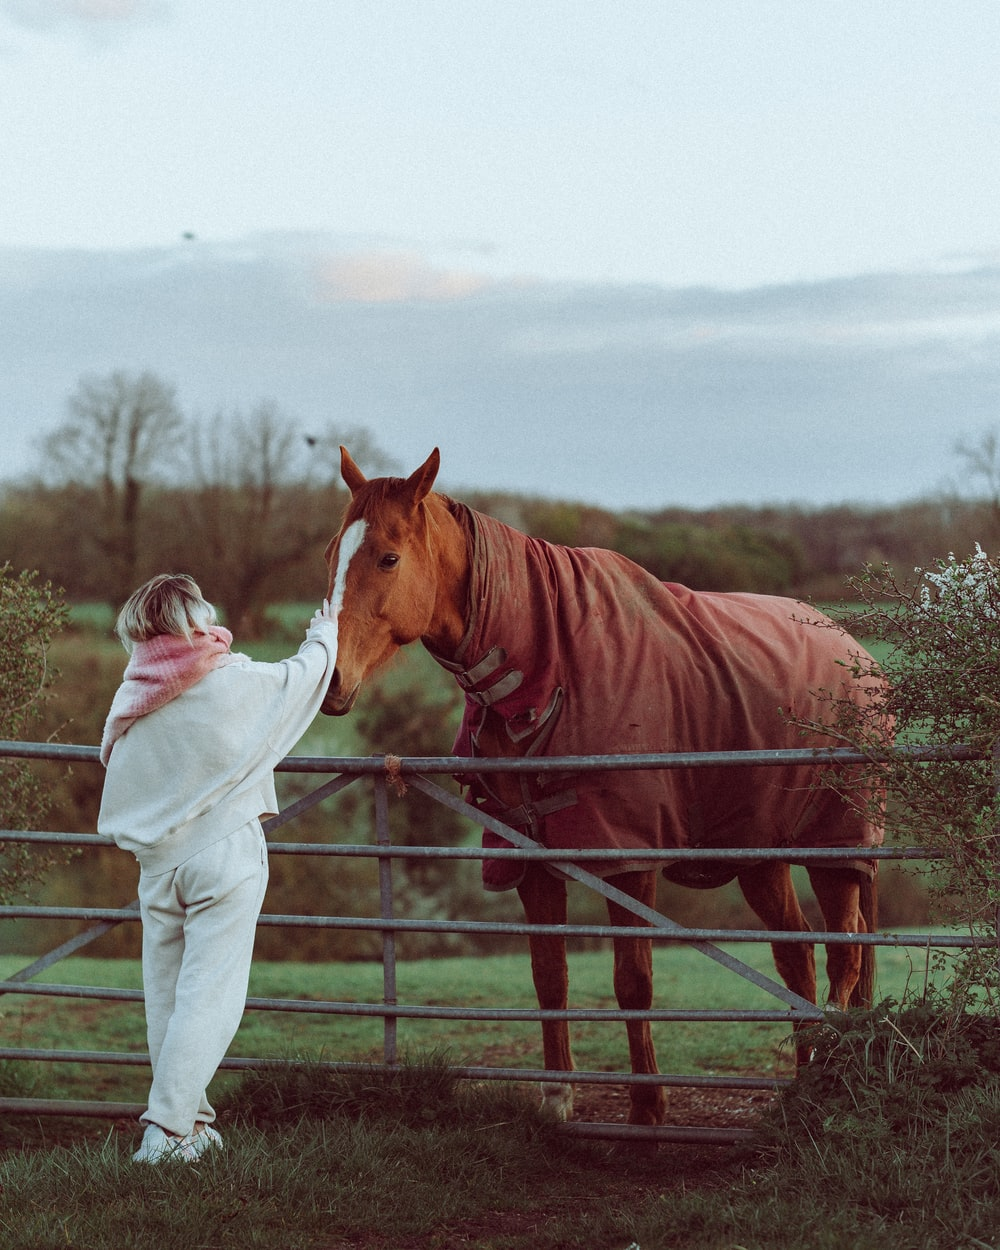 woman in white long sleeve shirt standing beside brown horse during daytime